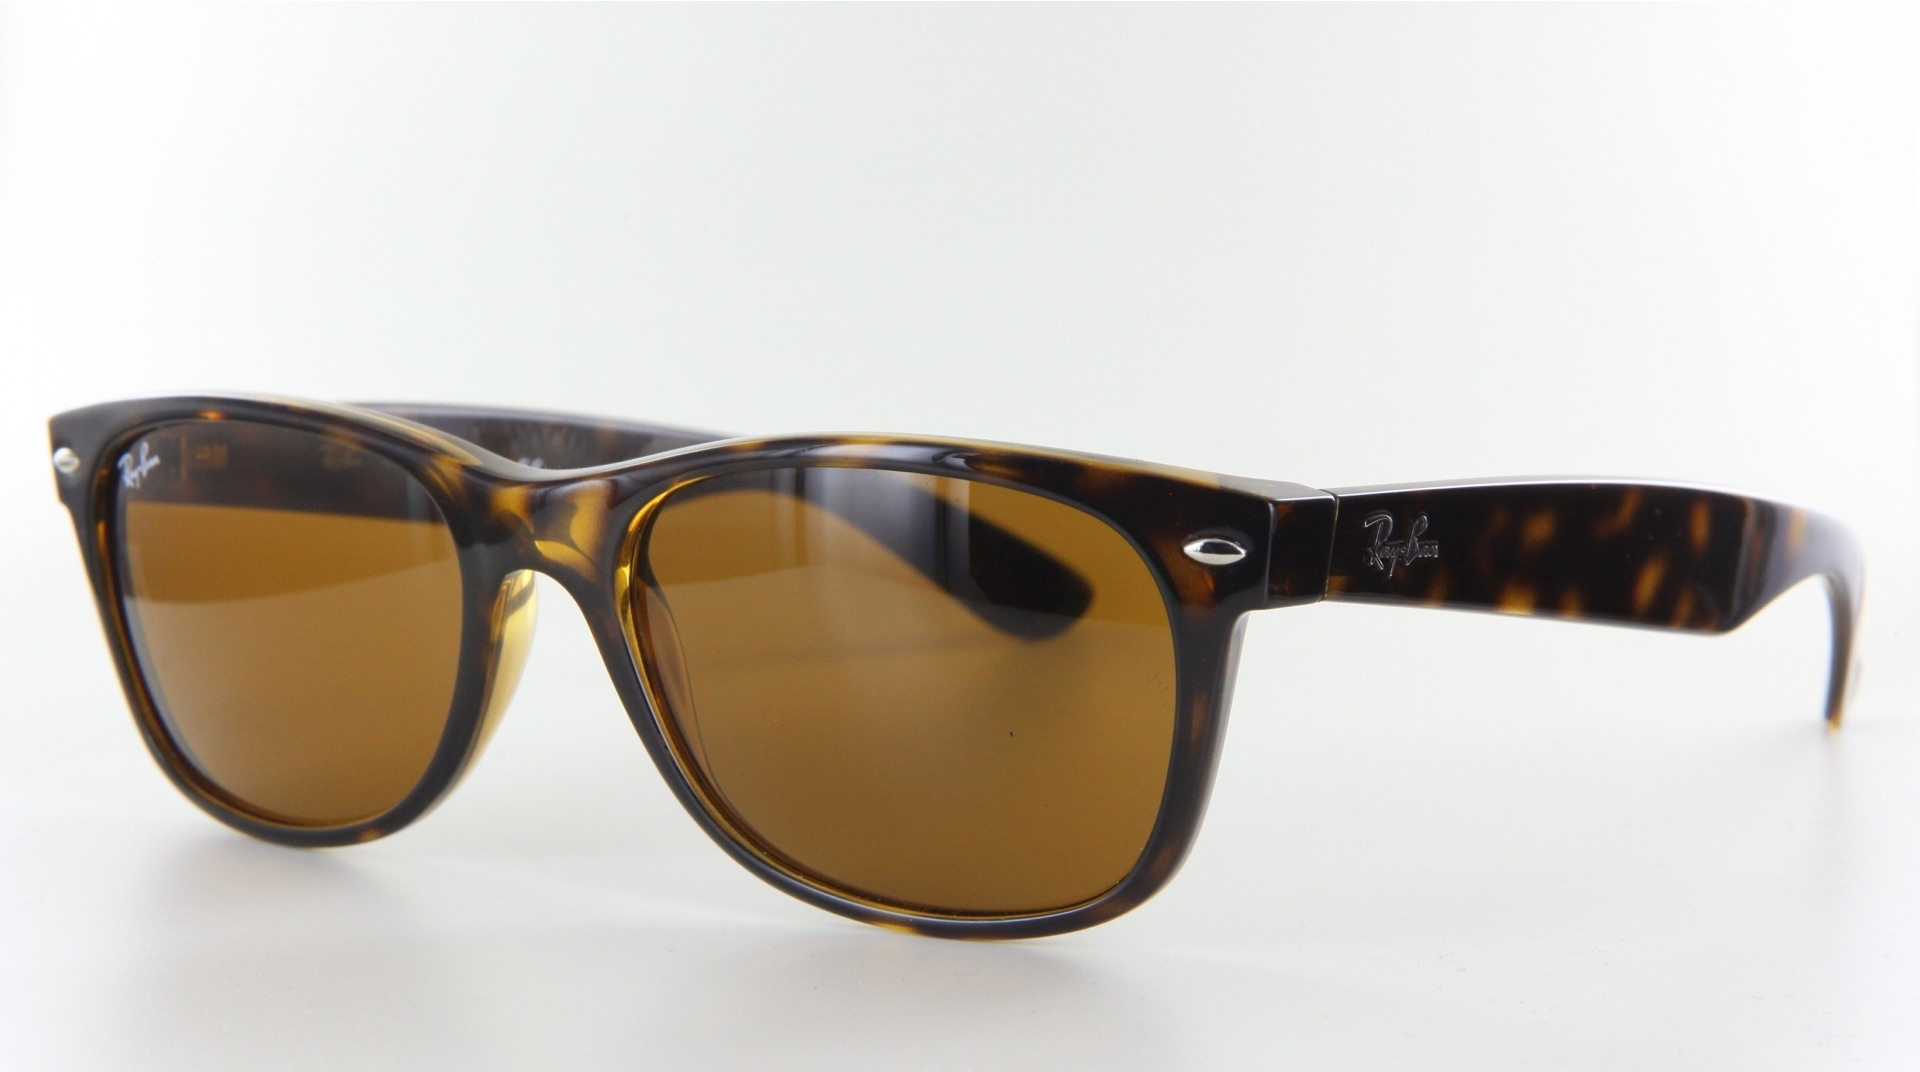 Ray-Ban - ref: 56254